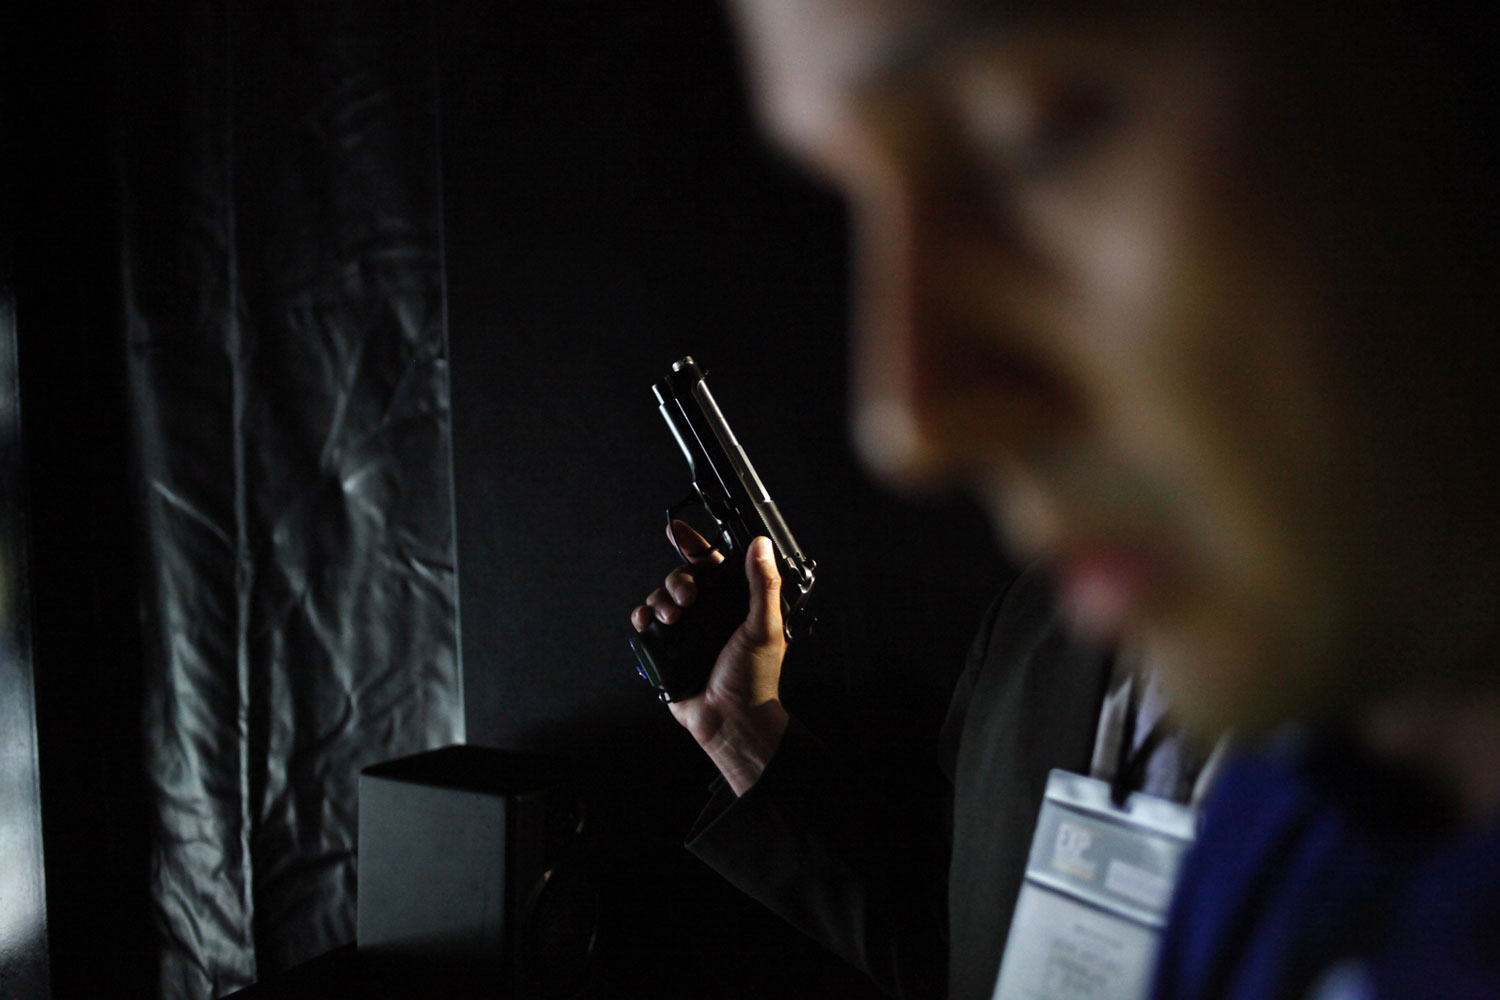 April 12, 2011. A visitor holds a pistol during the Expo Seguridad Mexico 2011 security fair in Mexico City. The fair displays the latest in police, civil defense and security equipment.